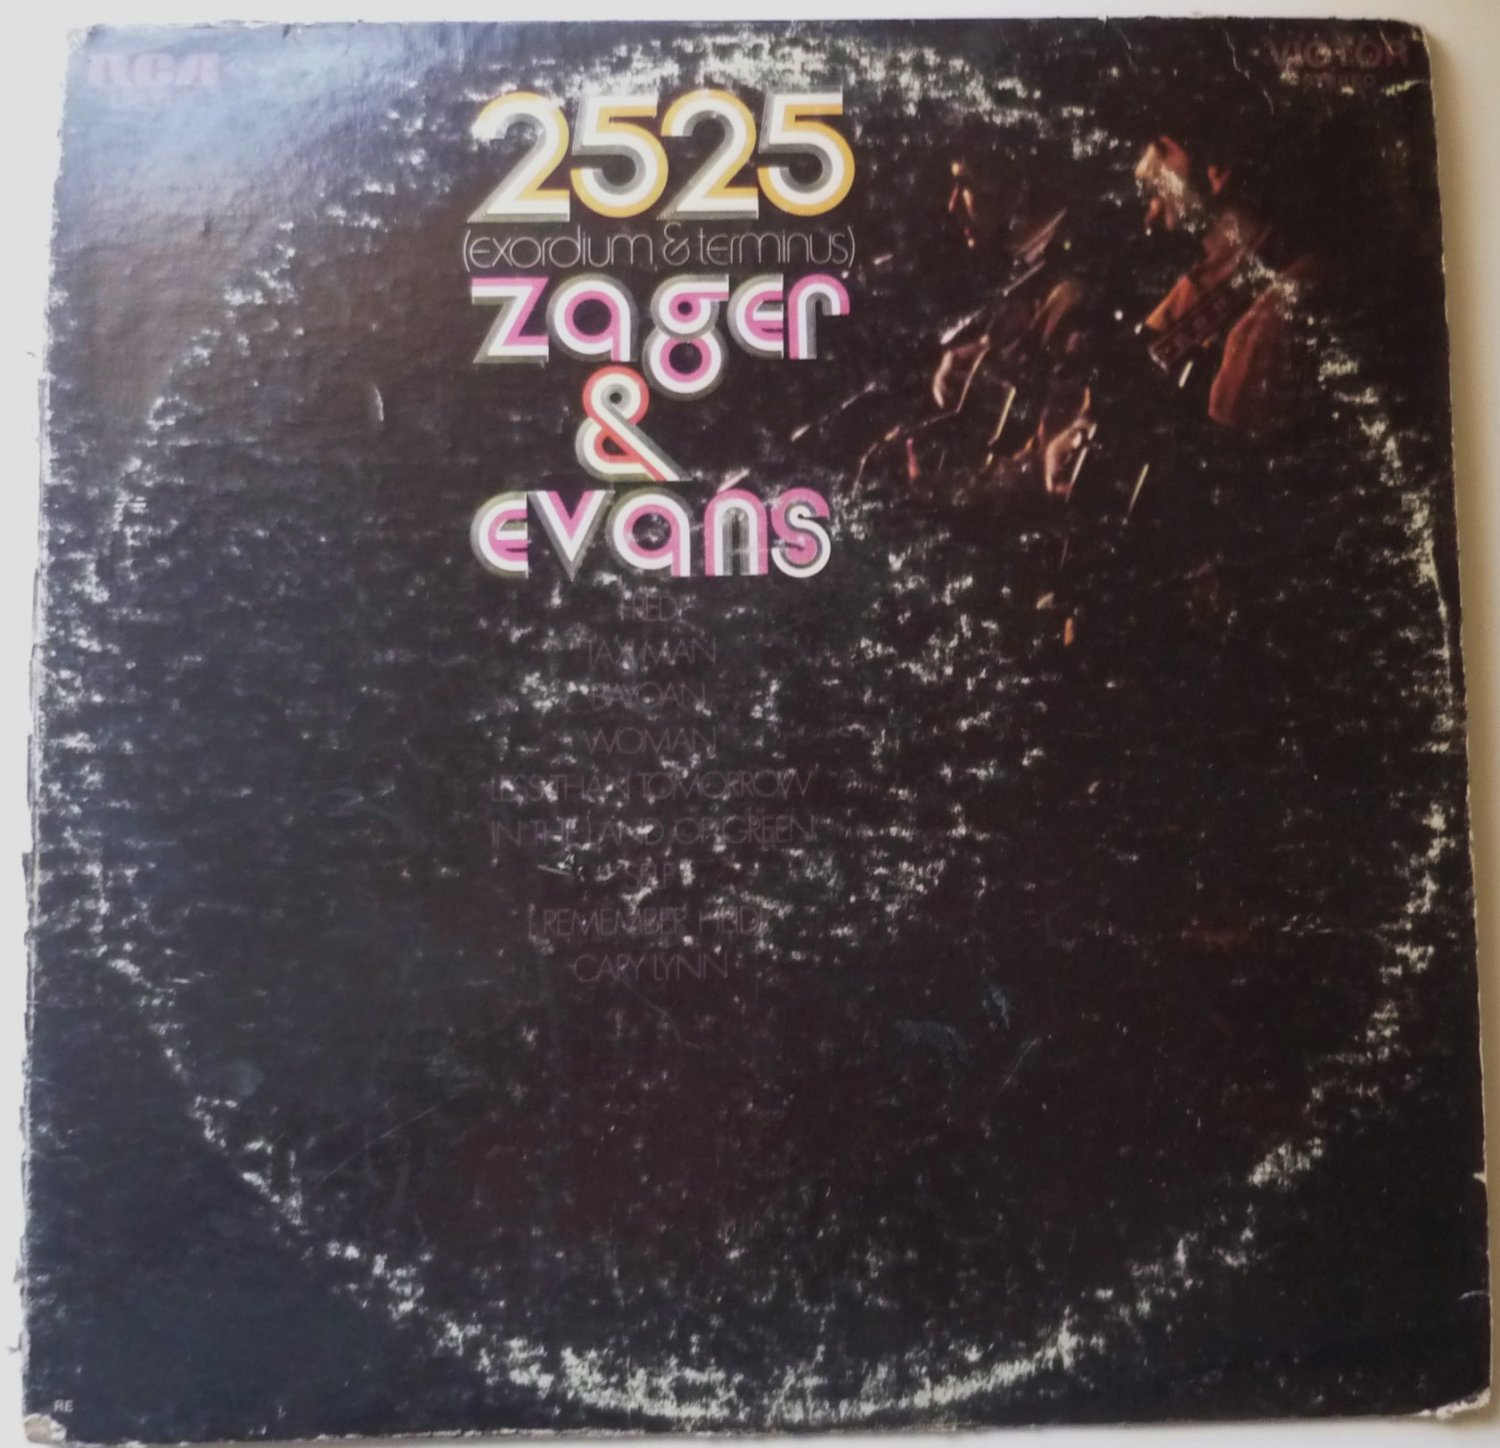 Zager and Evans lp 2525 LSP-4214